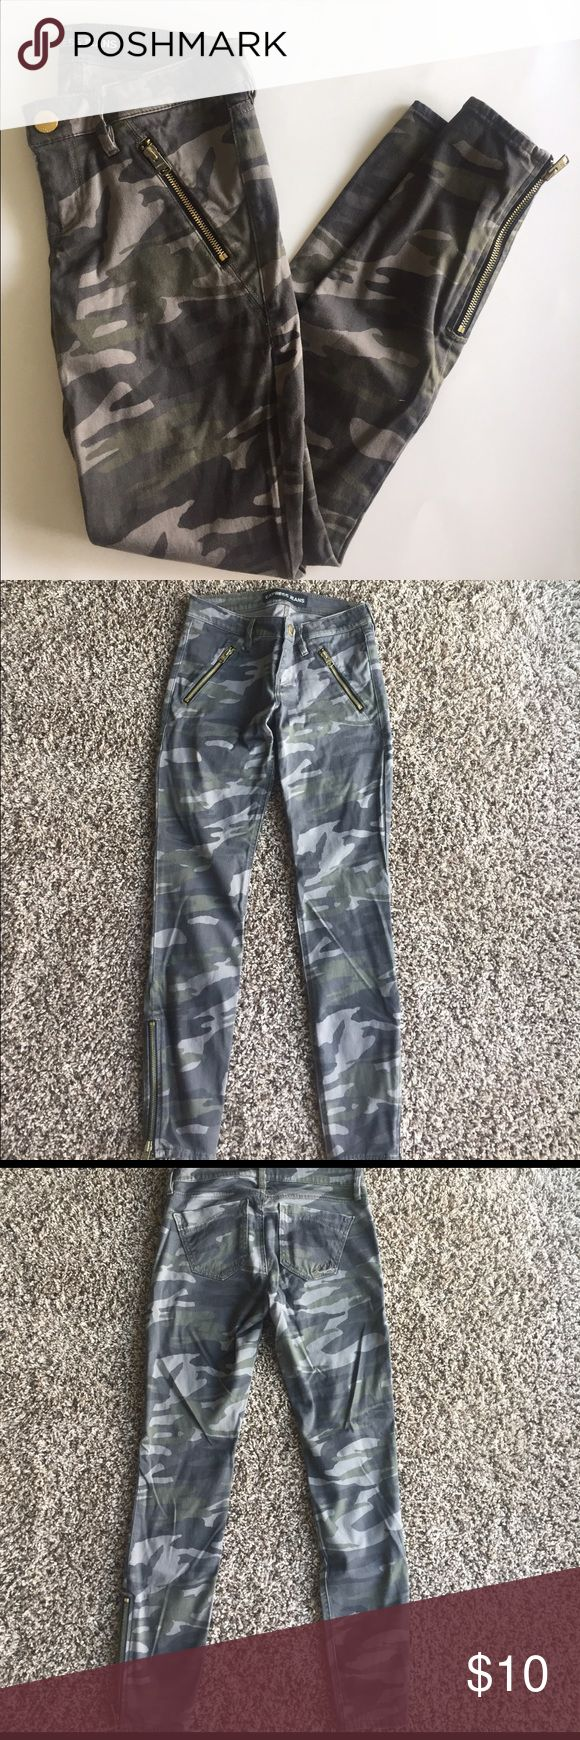 Camo skinny jeans with gold zipper detail Express camo skinny ankle jeans. Zipper detail and pockets and ankles. Super cute and comfy!! Express Pants Skinny